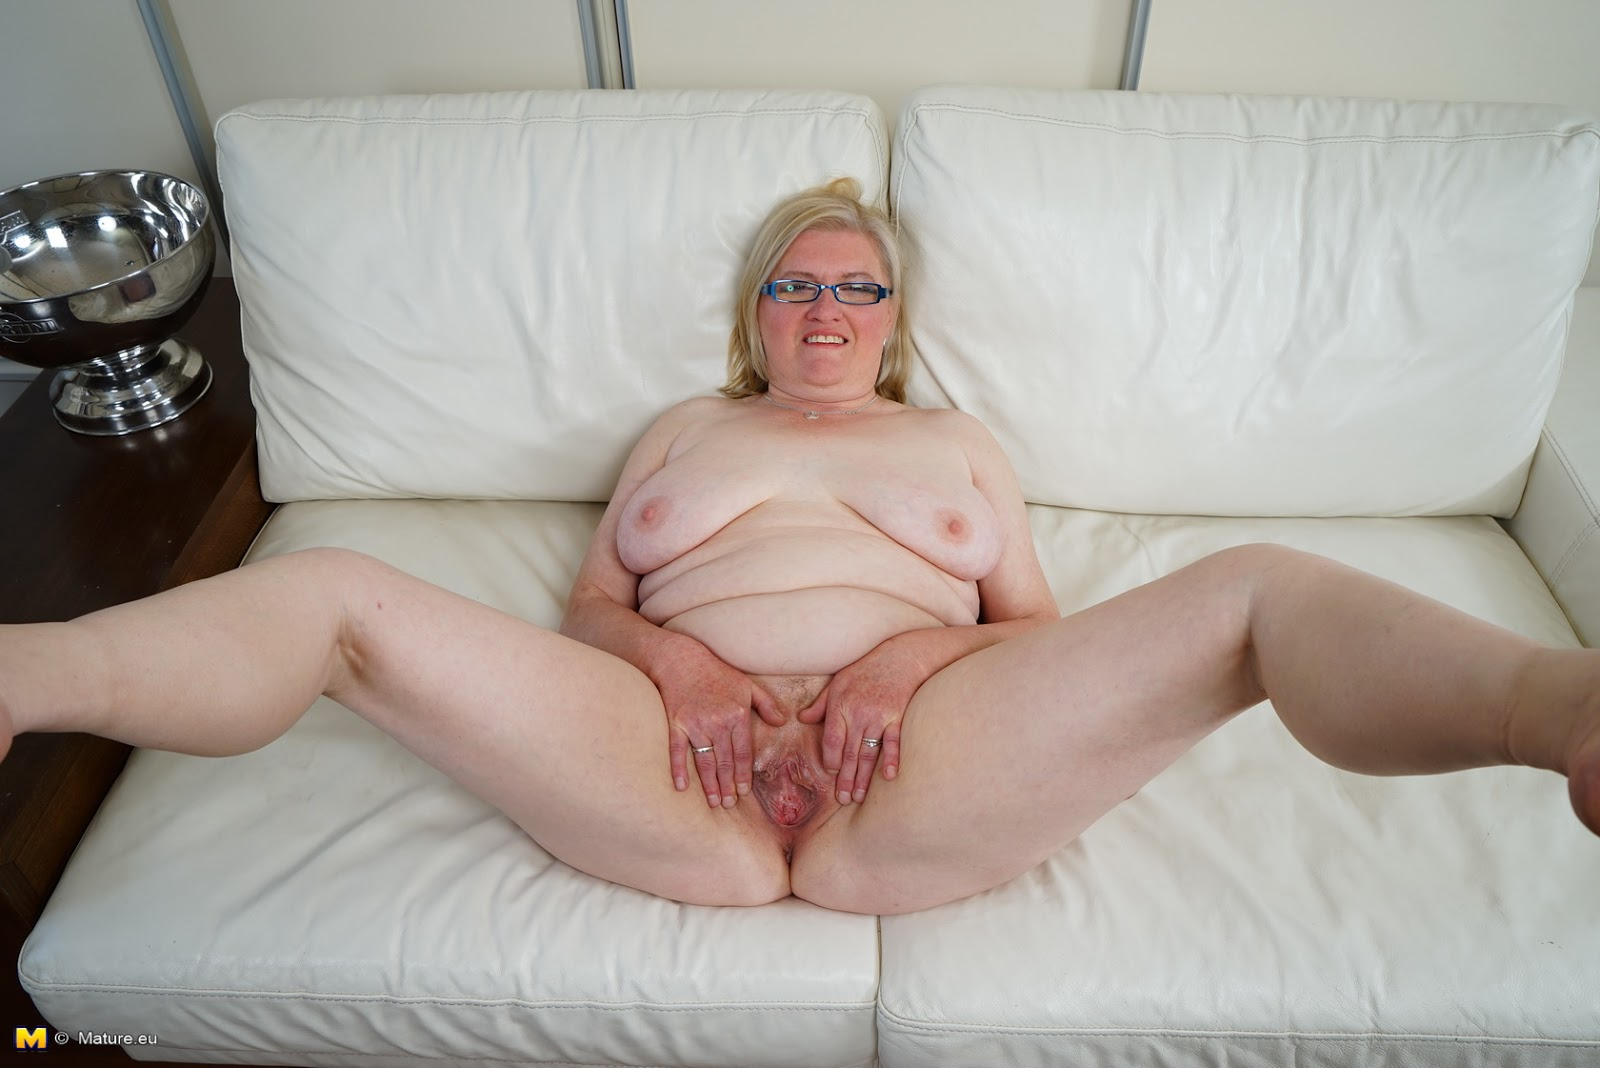 Solo 9 bbw granny with big natural boobs - 3 3